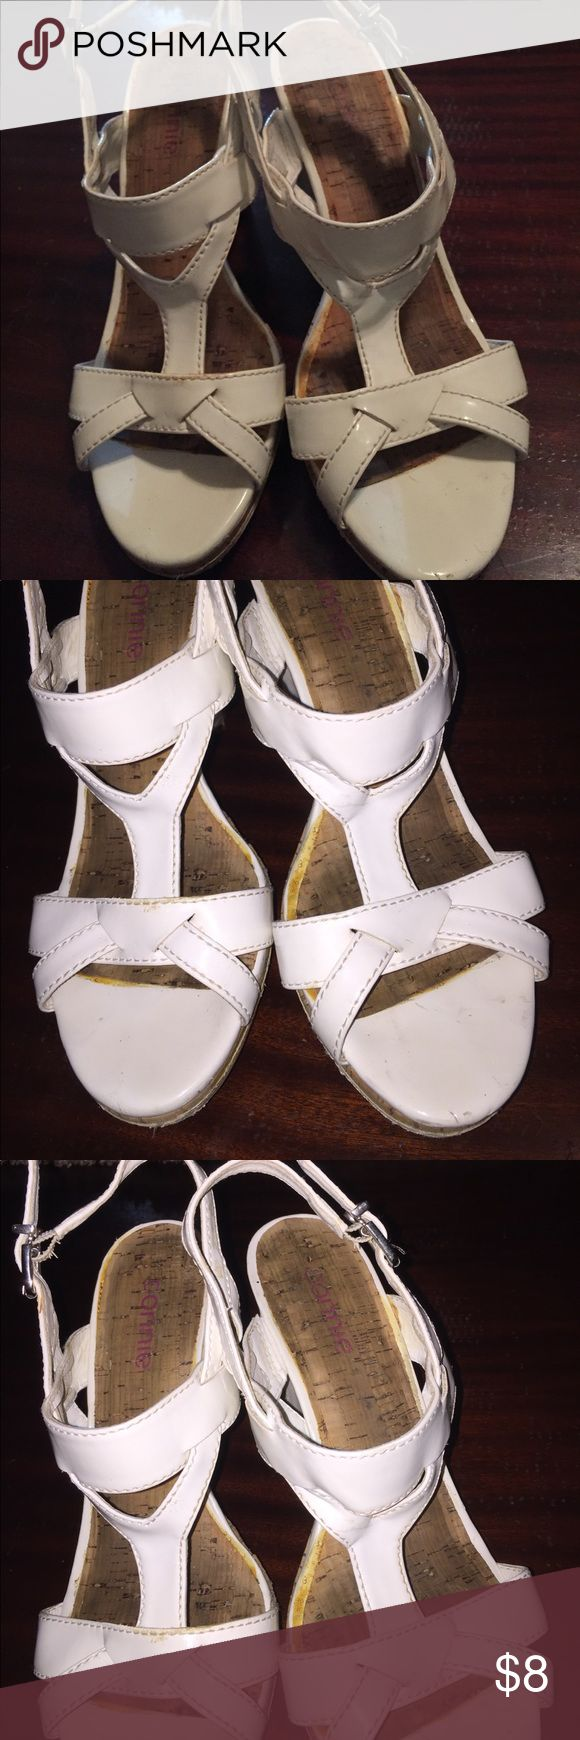 Connie White Sandals - Size 7.5, 4 Inch Heels Connie White Sandals - Size 7.5, 4 Inch Heels Connie Shoes Sandals